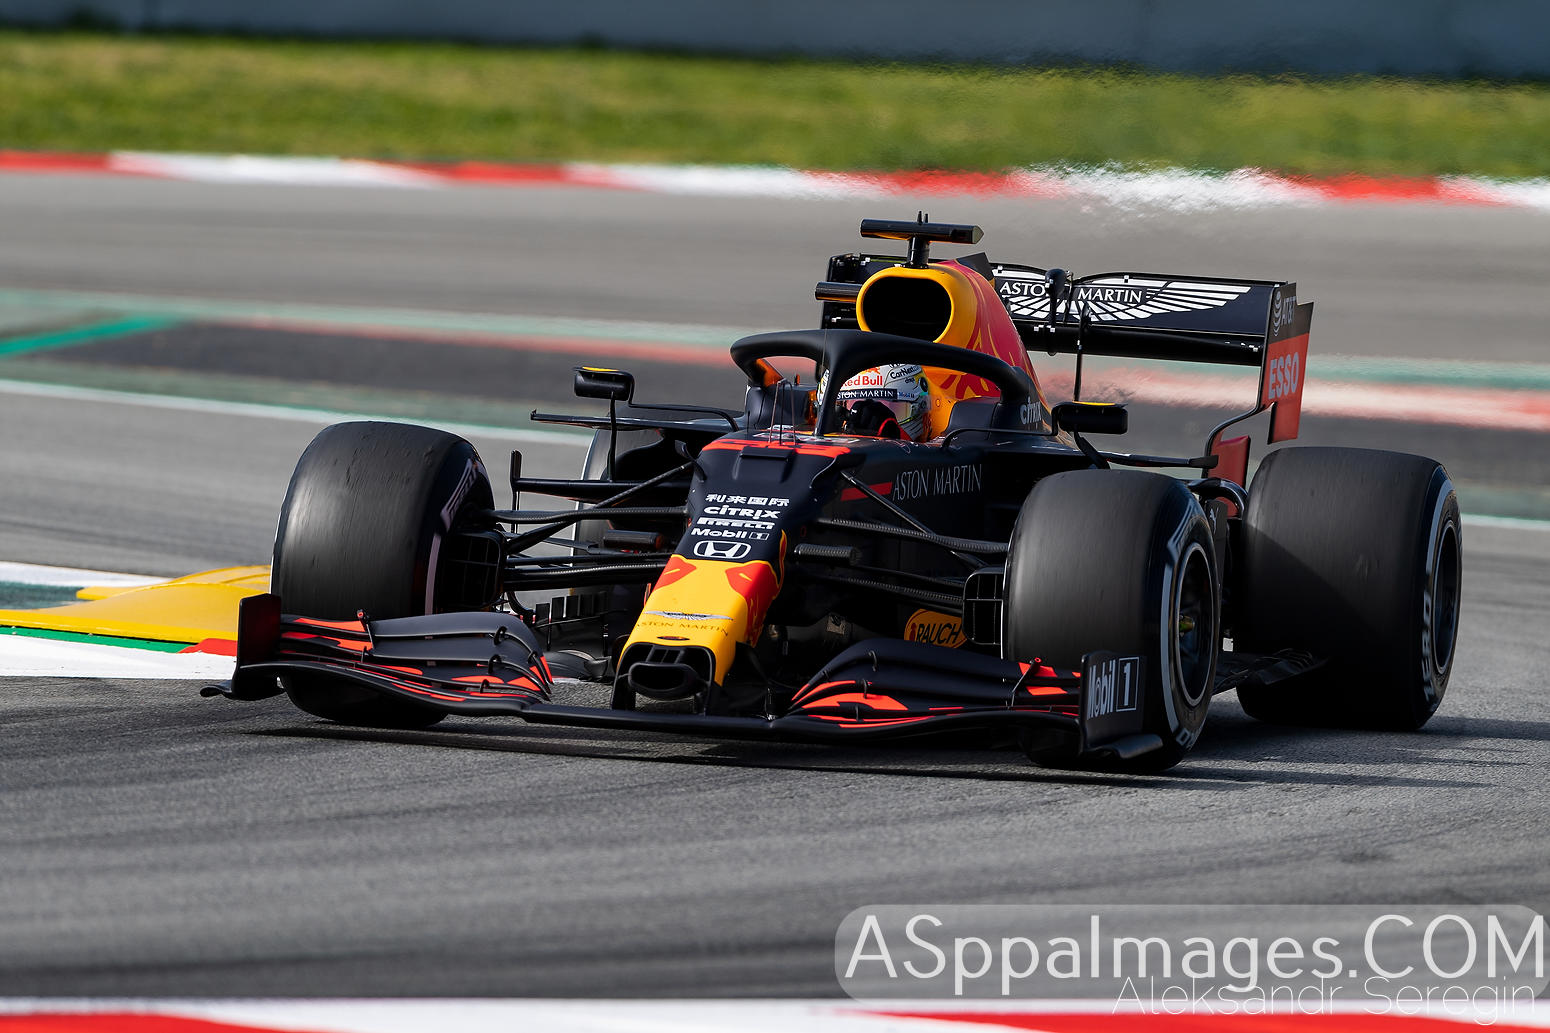 102.2020.FIA.F1.Test.Barcelona.Day.5.RB.ASppaImges.COM by ASppaImages.COM | Aleksandr B. Seregin (c).